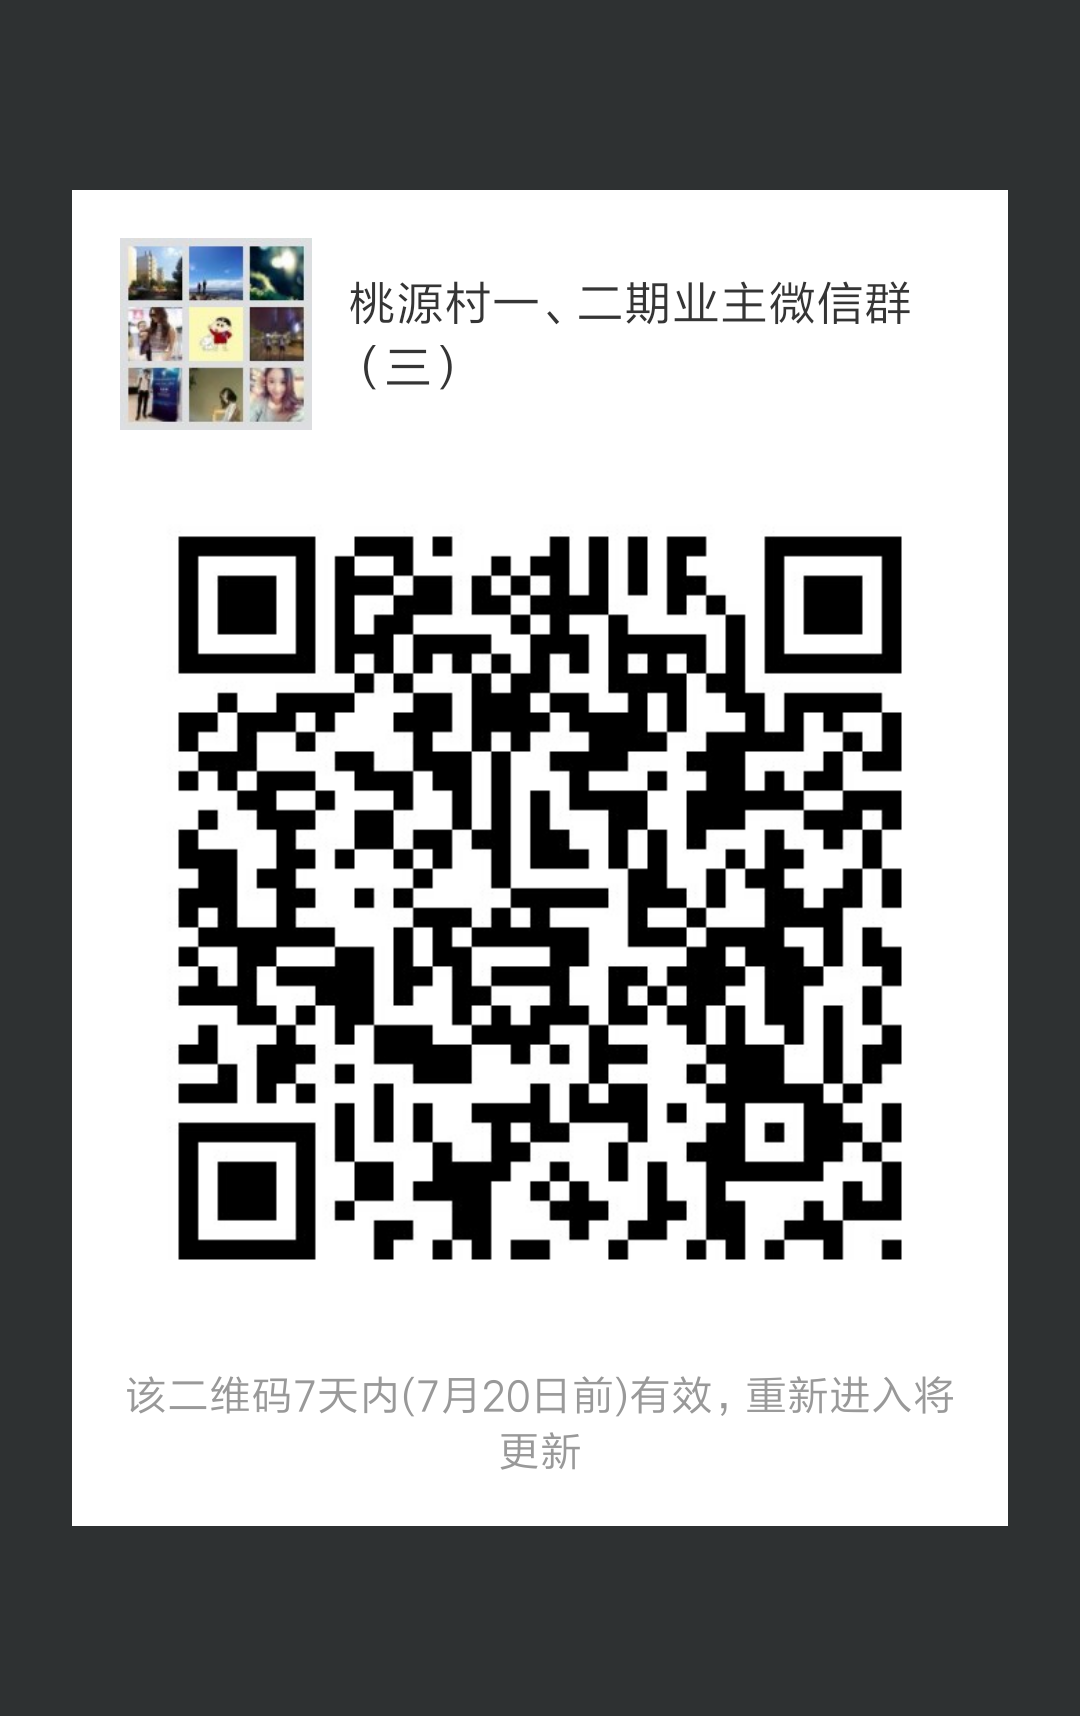 mmqrcode1531471859082.png